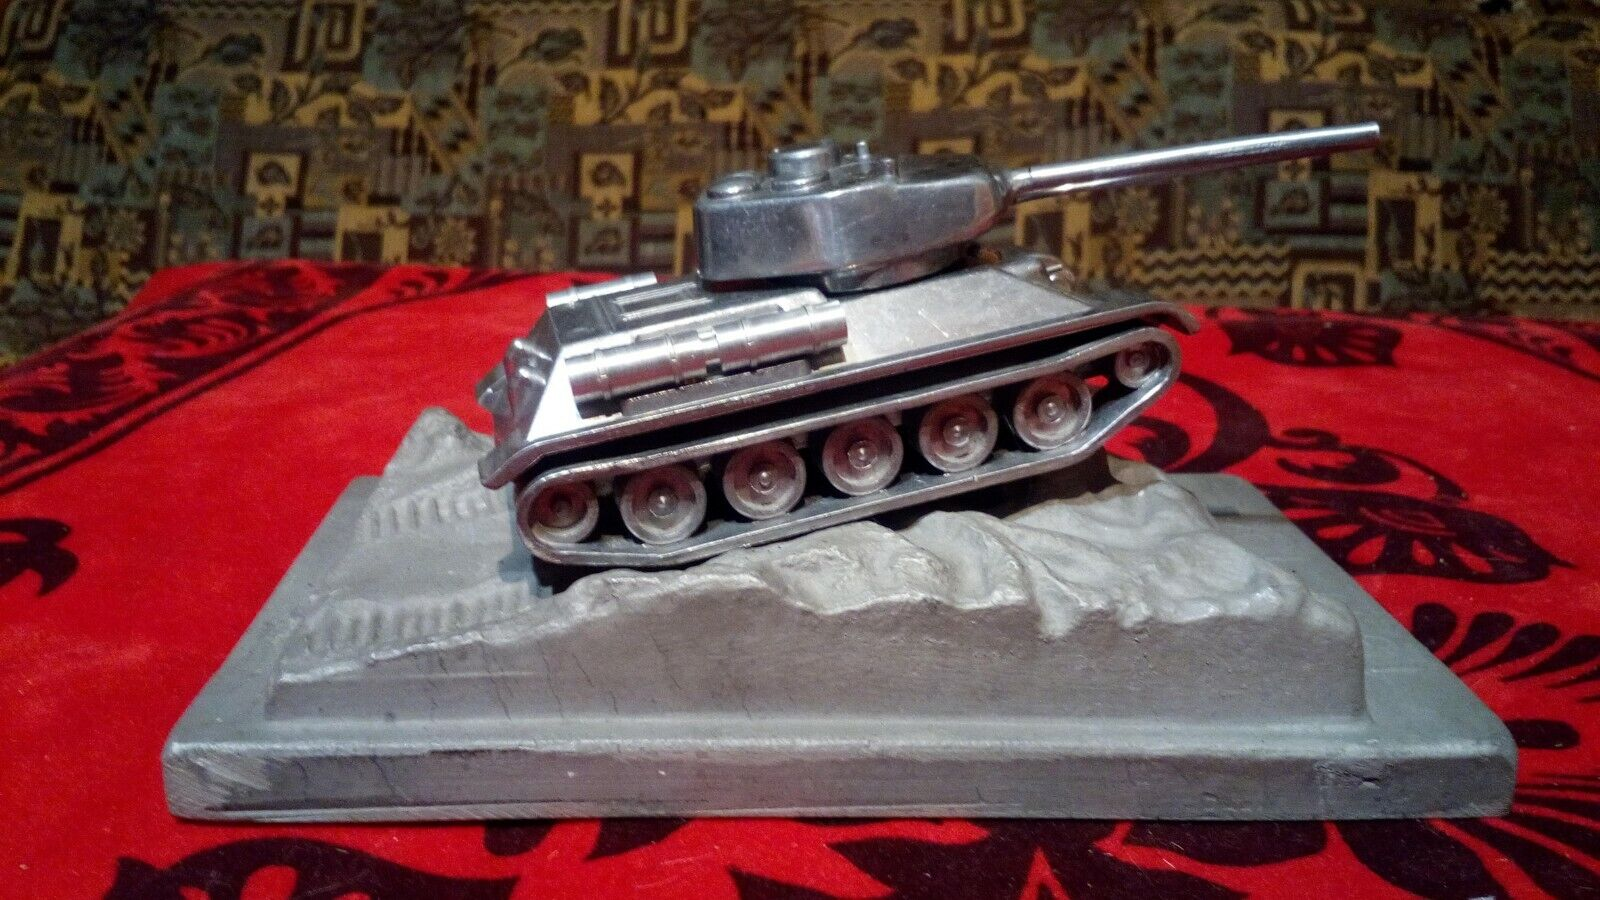 Collection souvenir tank tank T-34. made in USSR